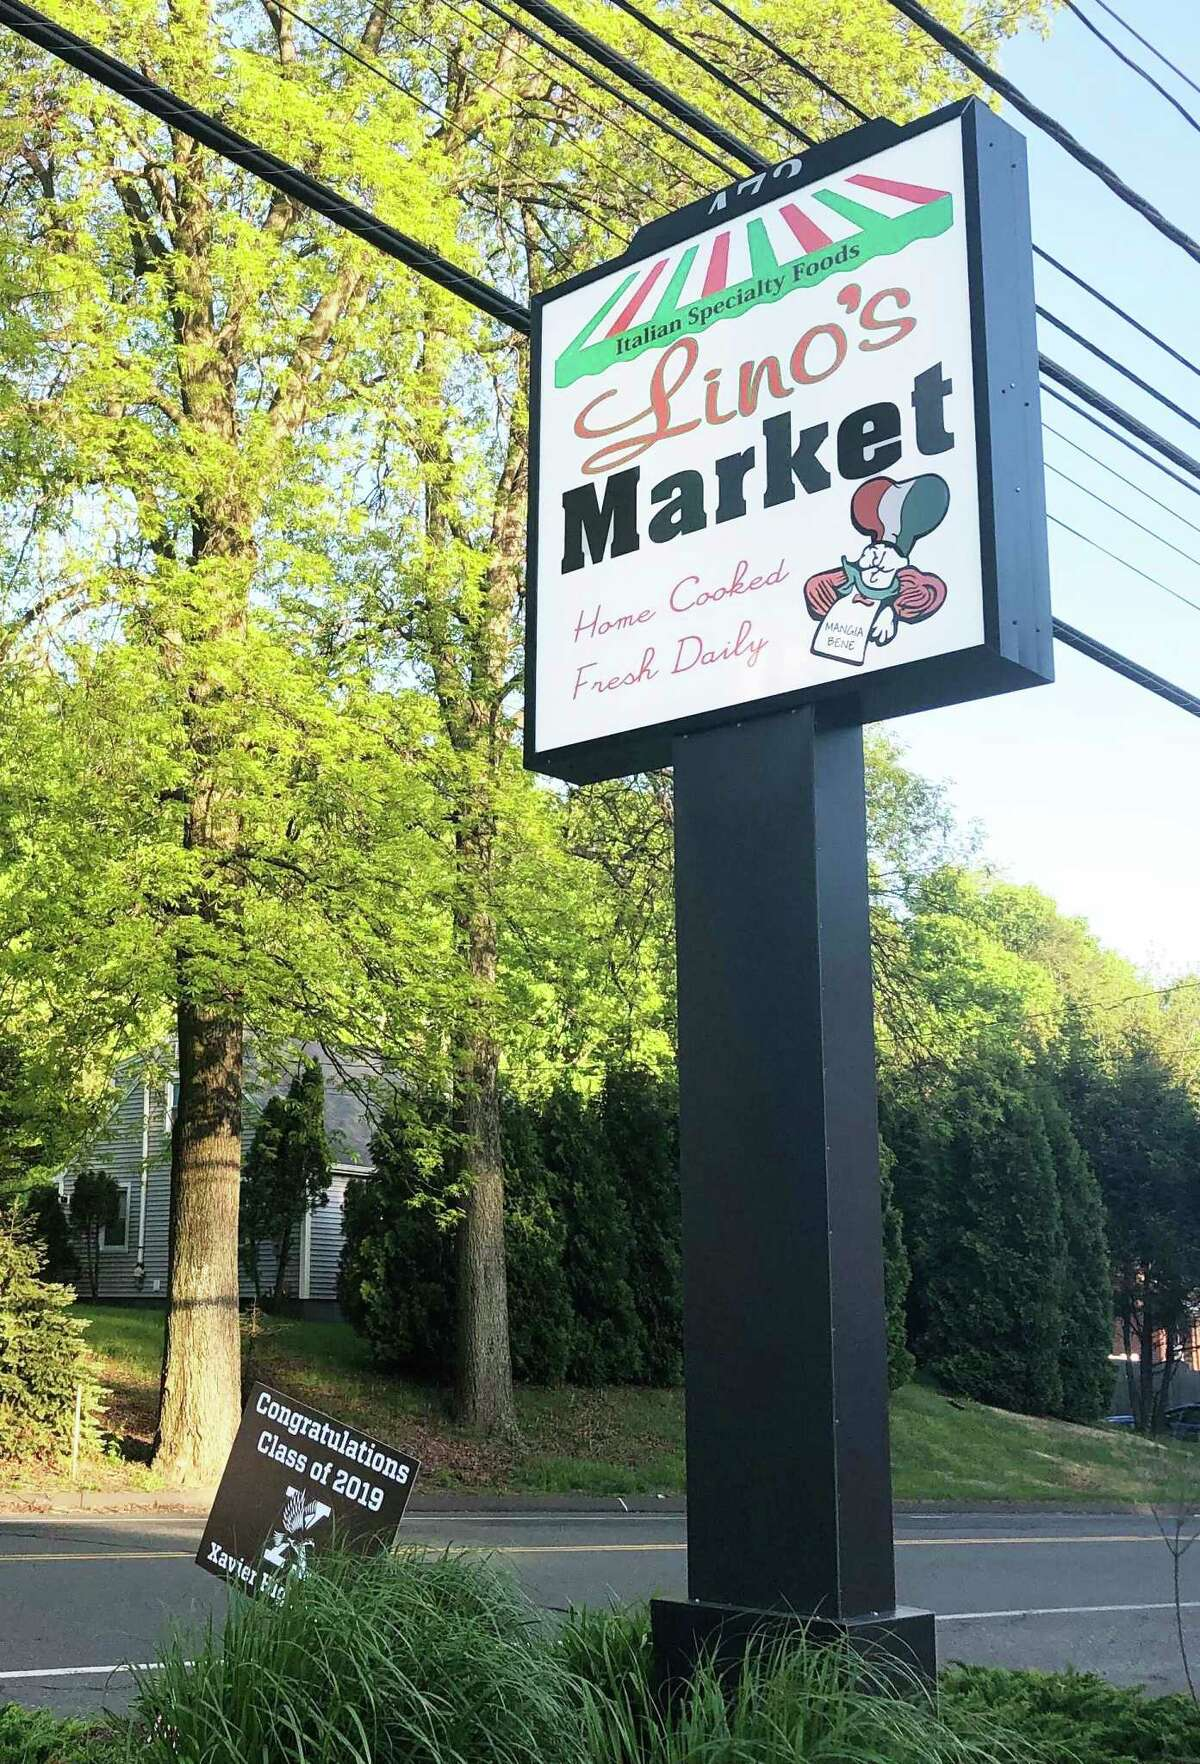 The Middlesex County Chamber of Commerce recently chose Lino's Market, 472 Main St., Durham, as the business of the year with less than 30 employees.